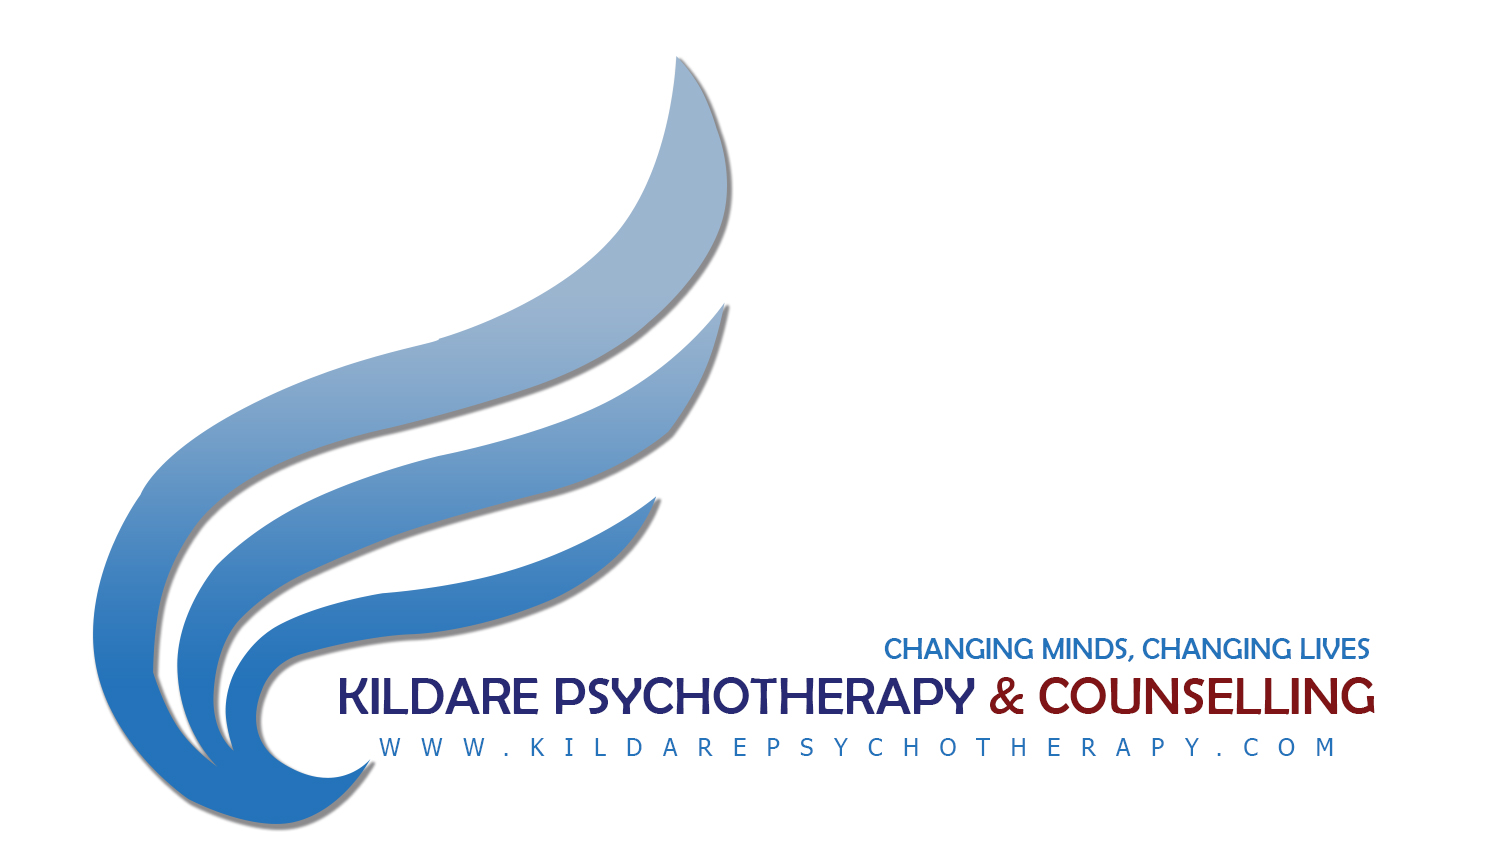 Kildare Psychotherapy & Counselling Logo